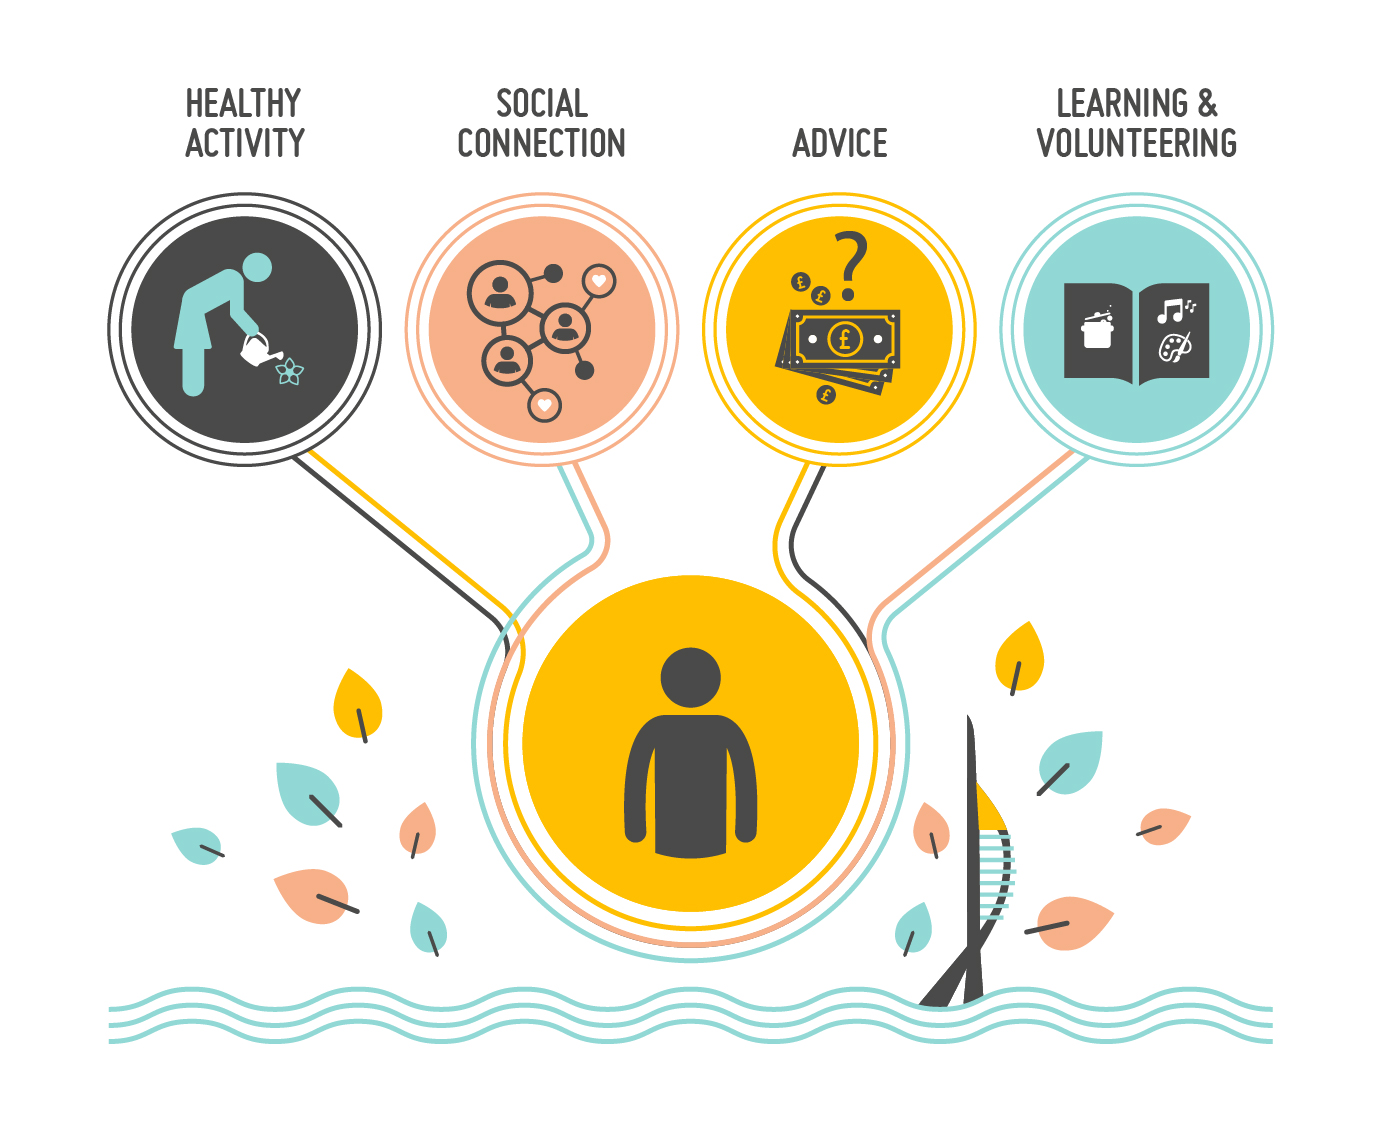 An infographic that has Healthy activity, social connection, advice, learning written in